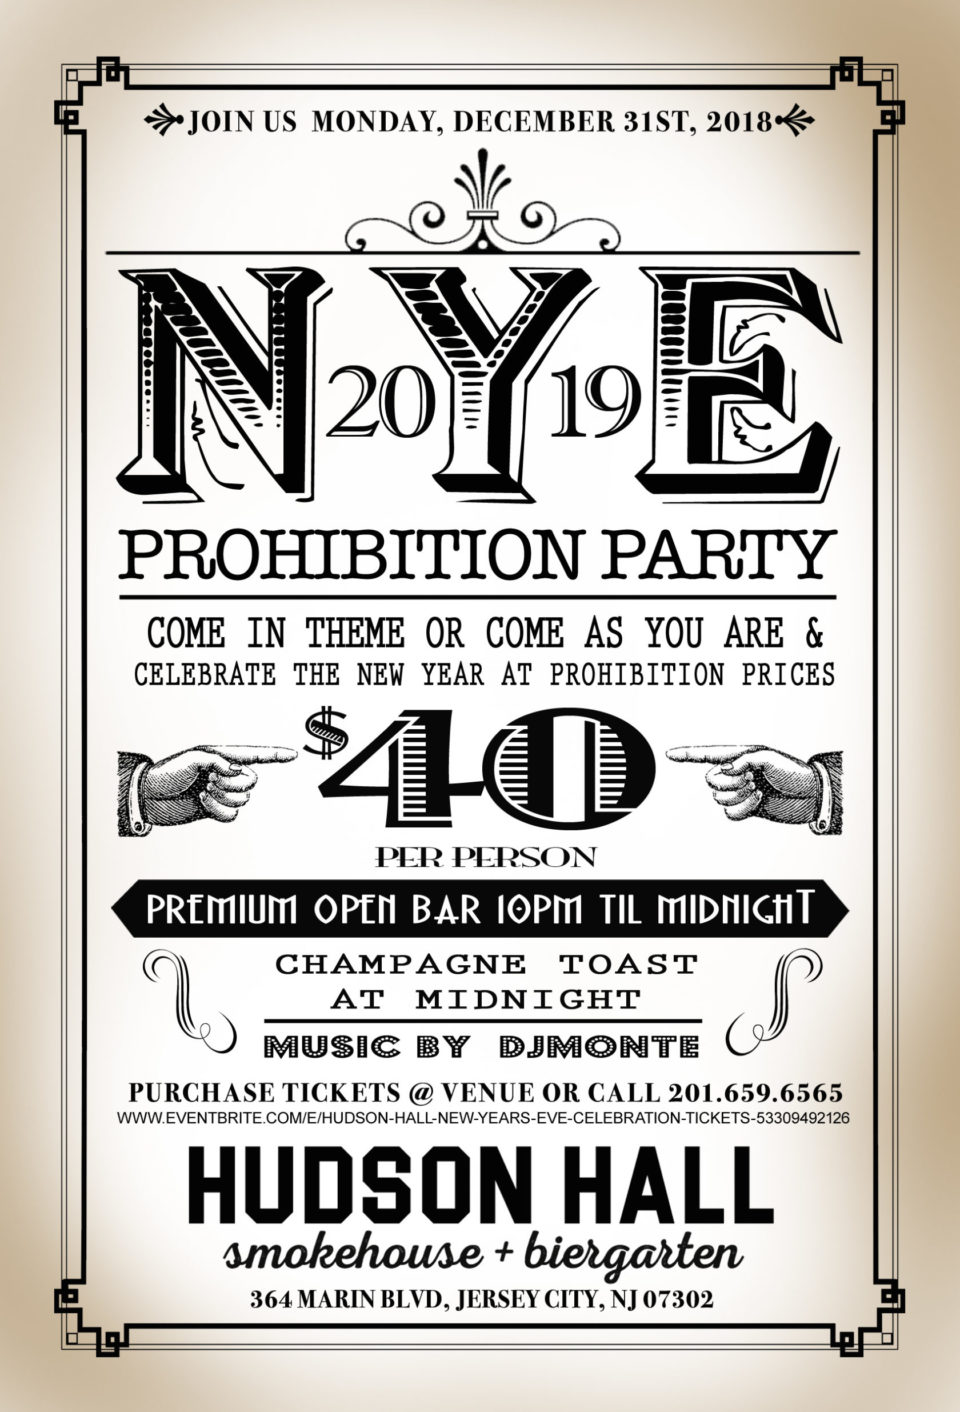 ring in the new year at hudson hall from 9pm to 1am theyll have a premium open bar balloon drop photo booth party favors passed hors doeuvres